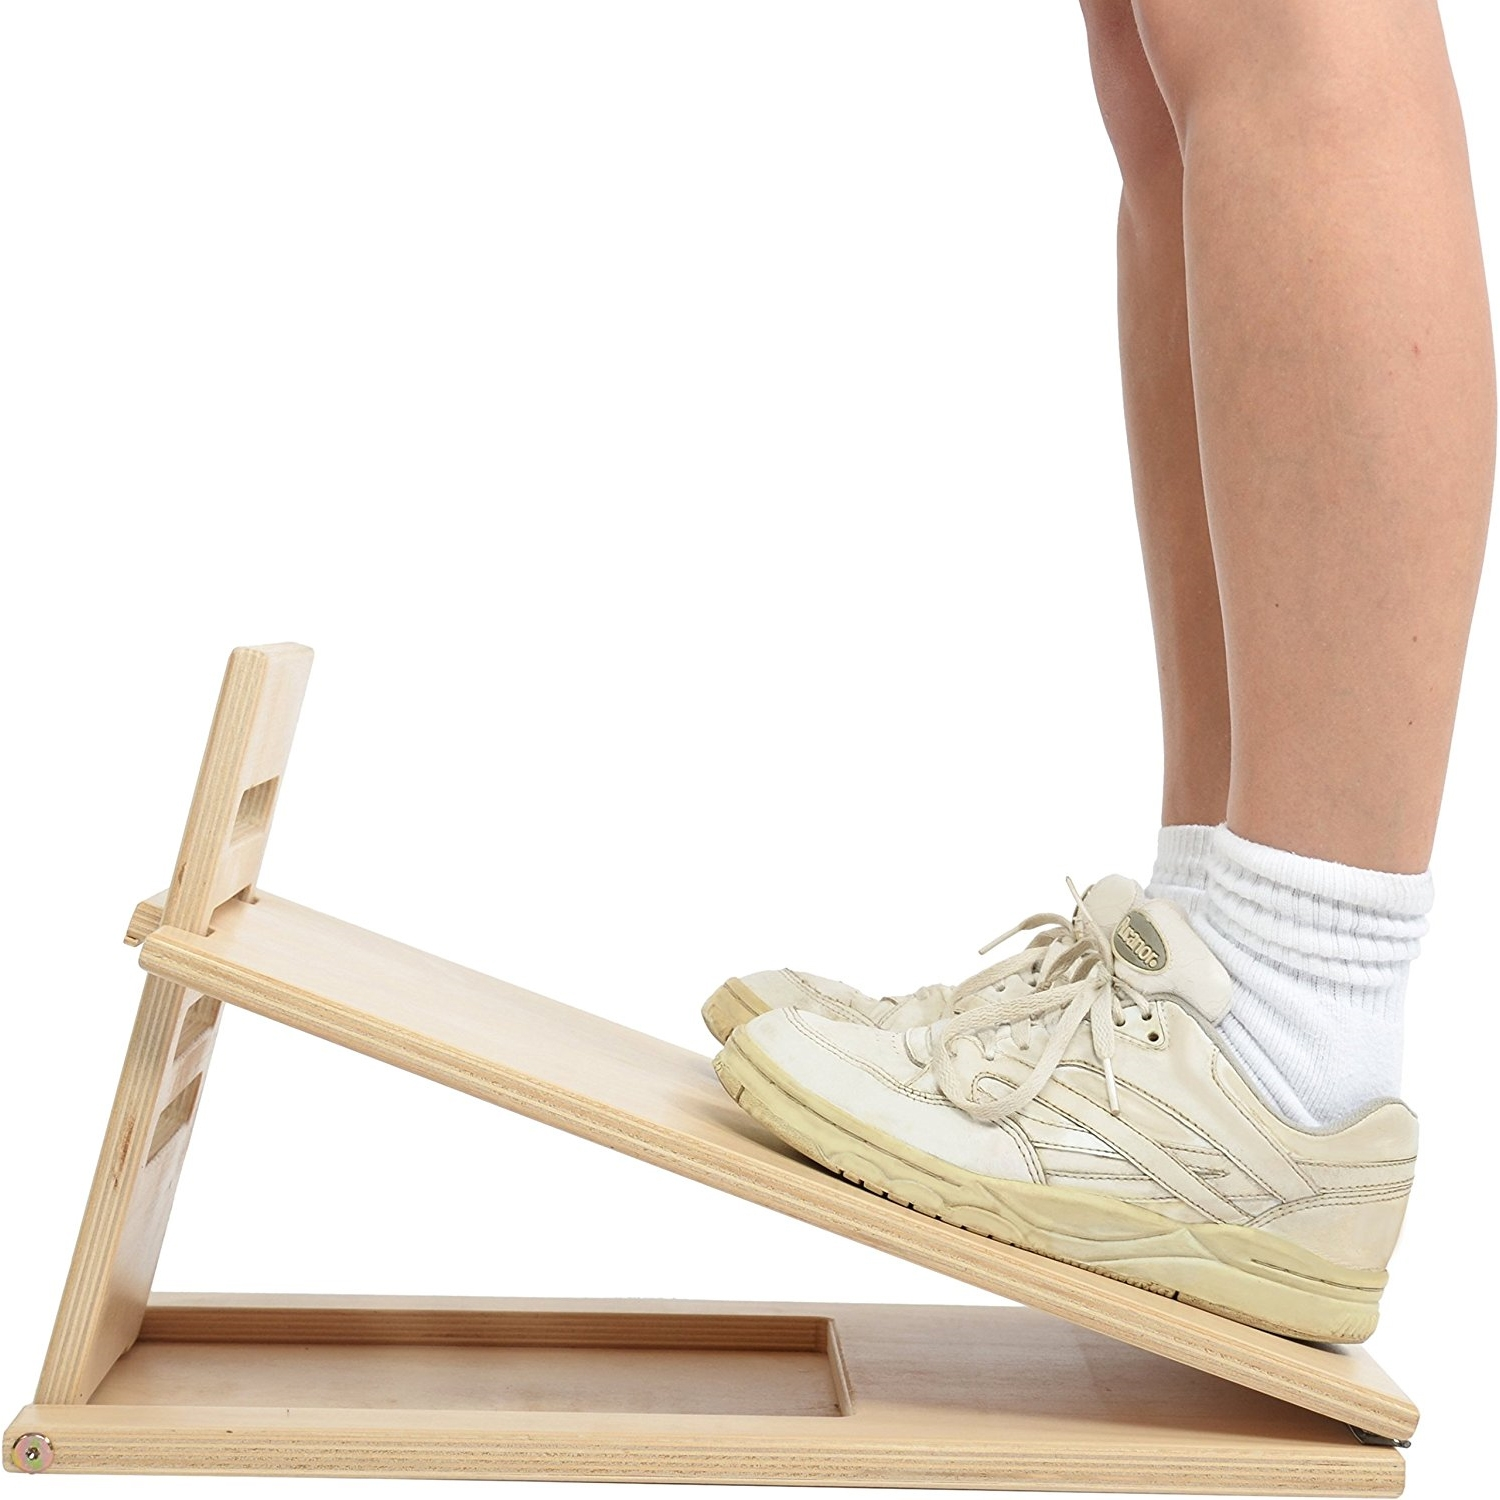 Bord hellend 10-15-20-25° - plank - hout